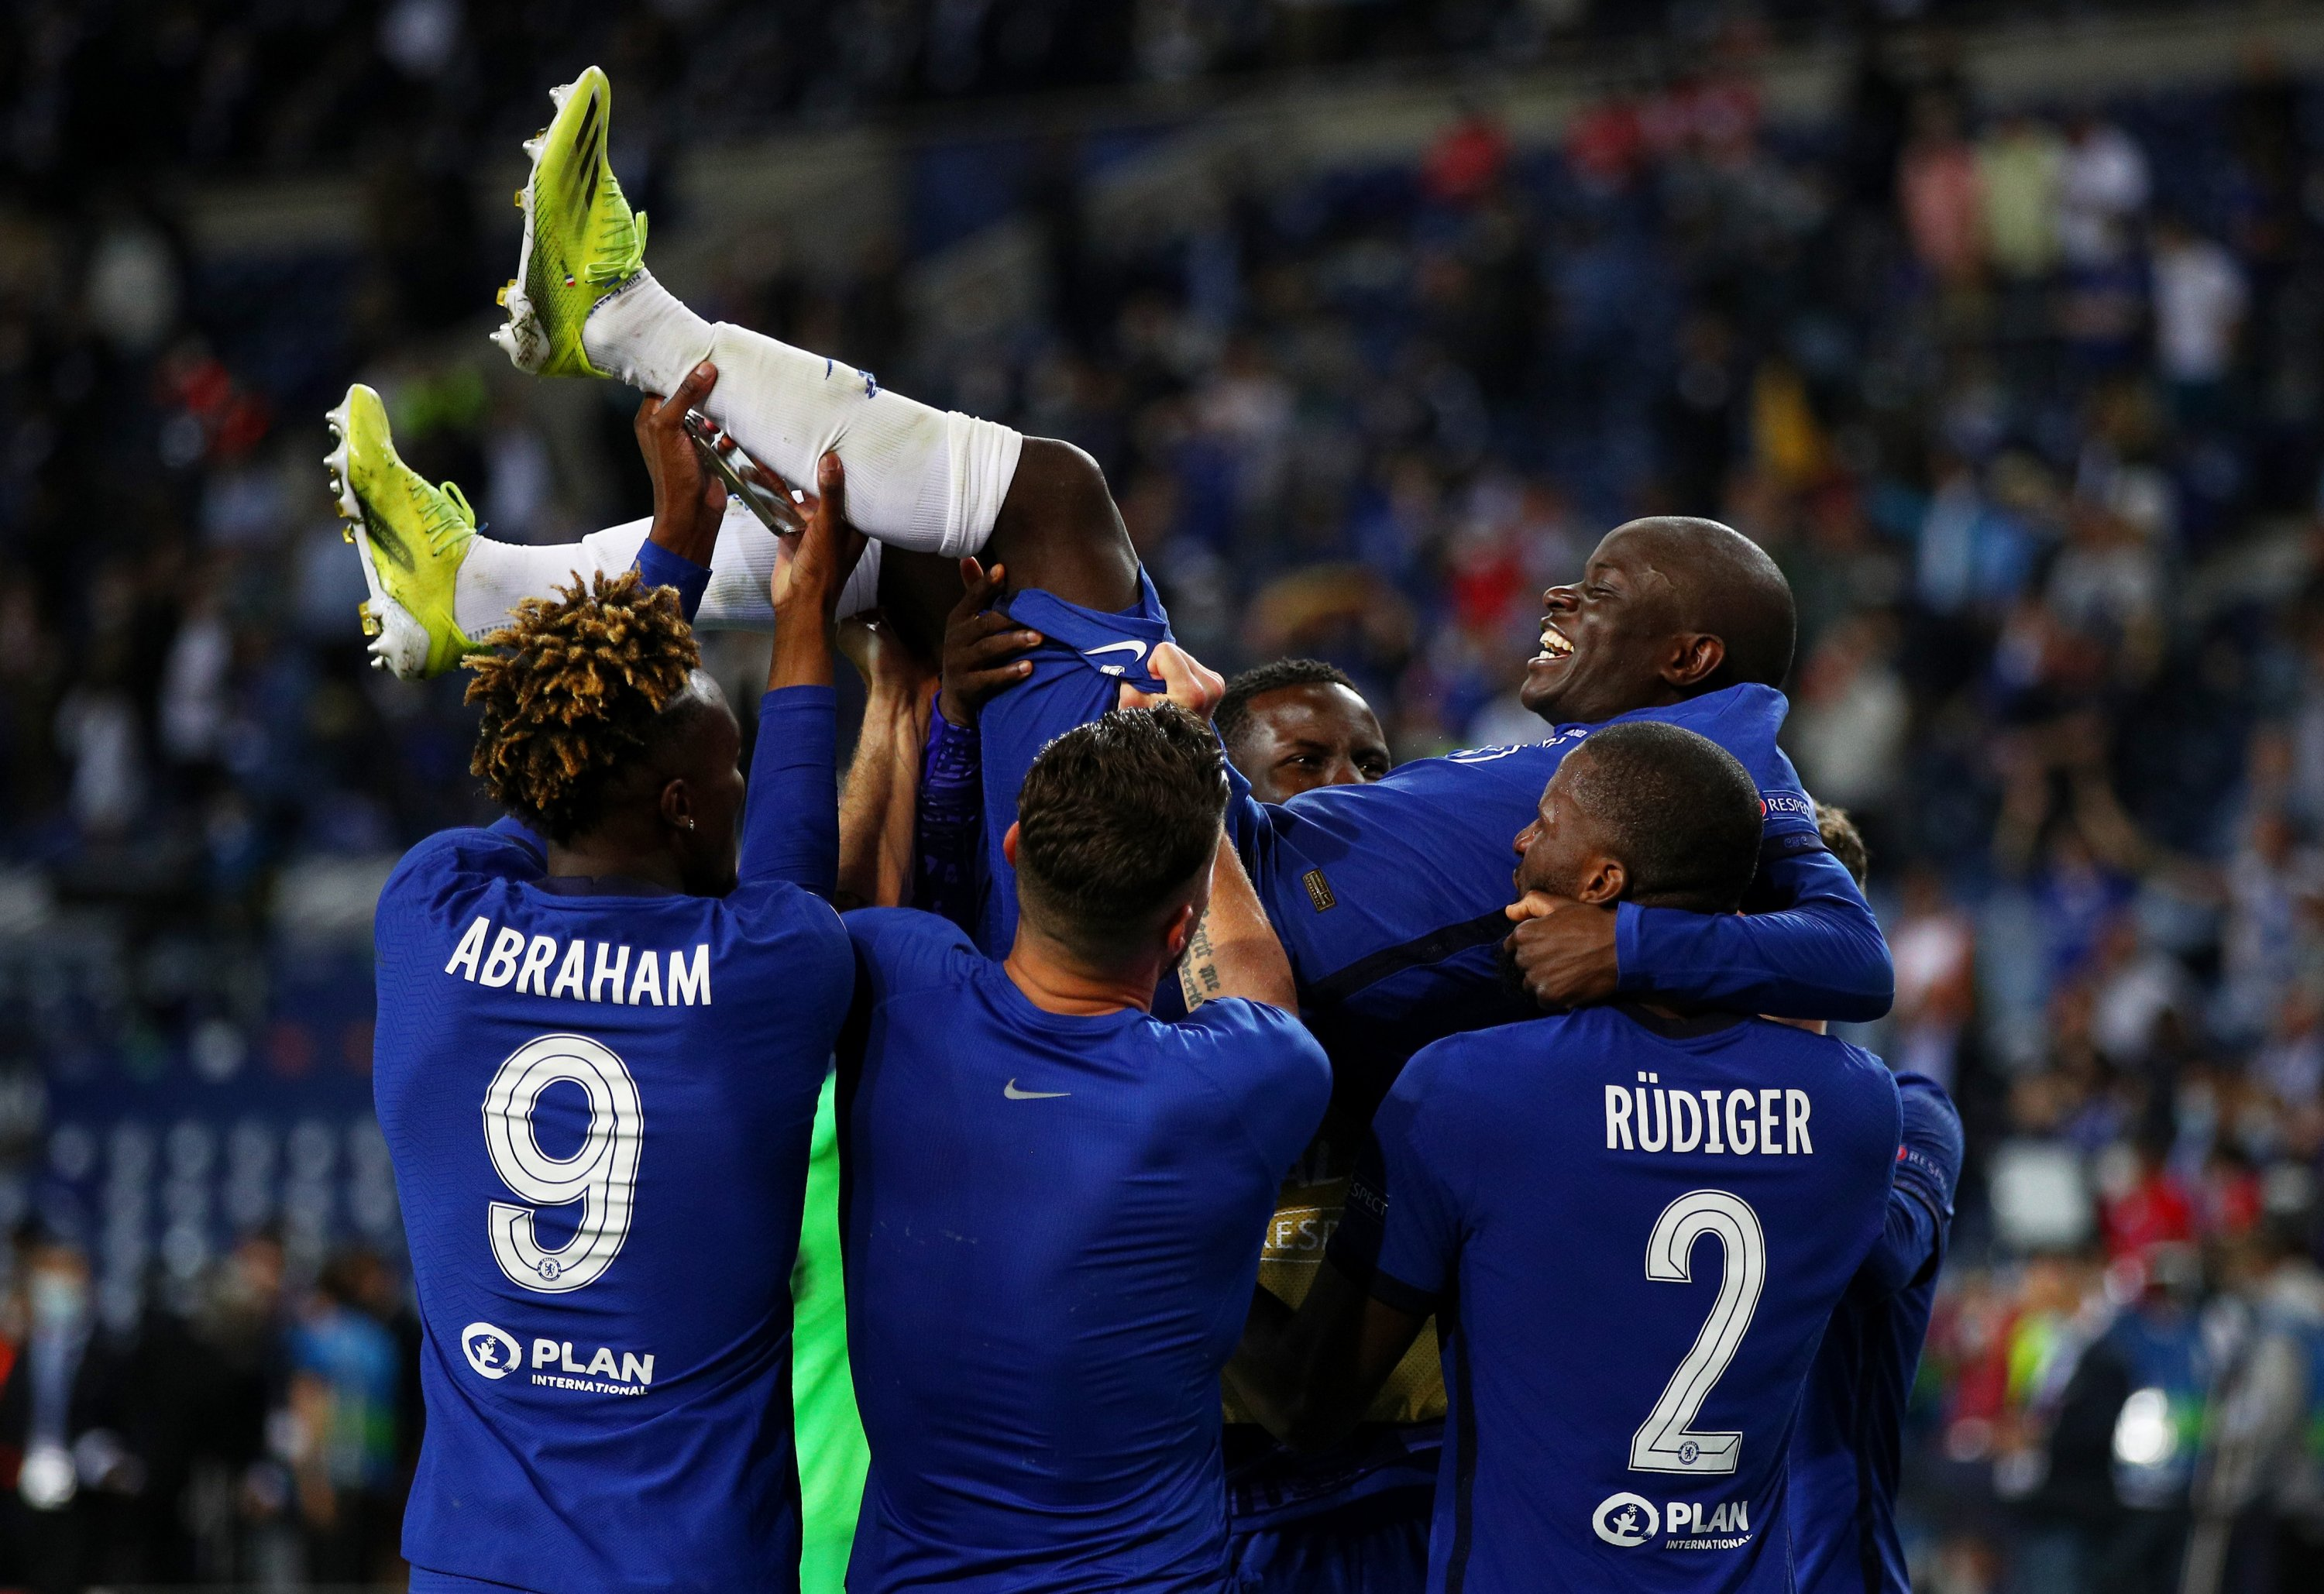 Chelsea players lift team mate N'Golo Kante of Chelsea celebrating victory in the UEFA Champions League Final between Manchester City and Chelsea FC at Estadio do Dragao, in Porto, Portugal, May 29, 2021. (Photo by Getty Images)